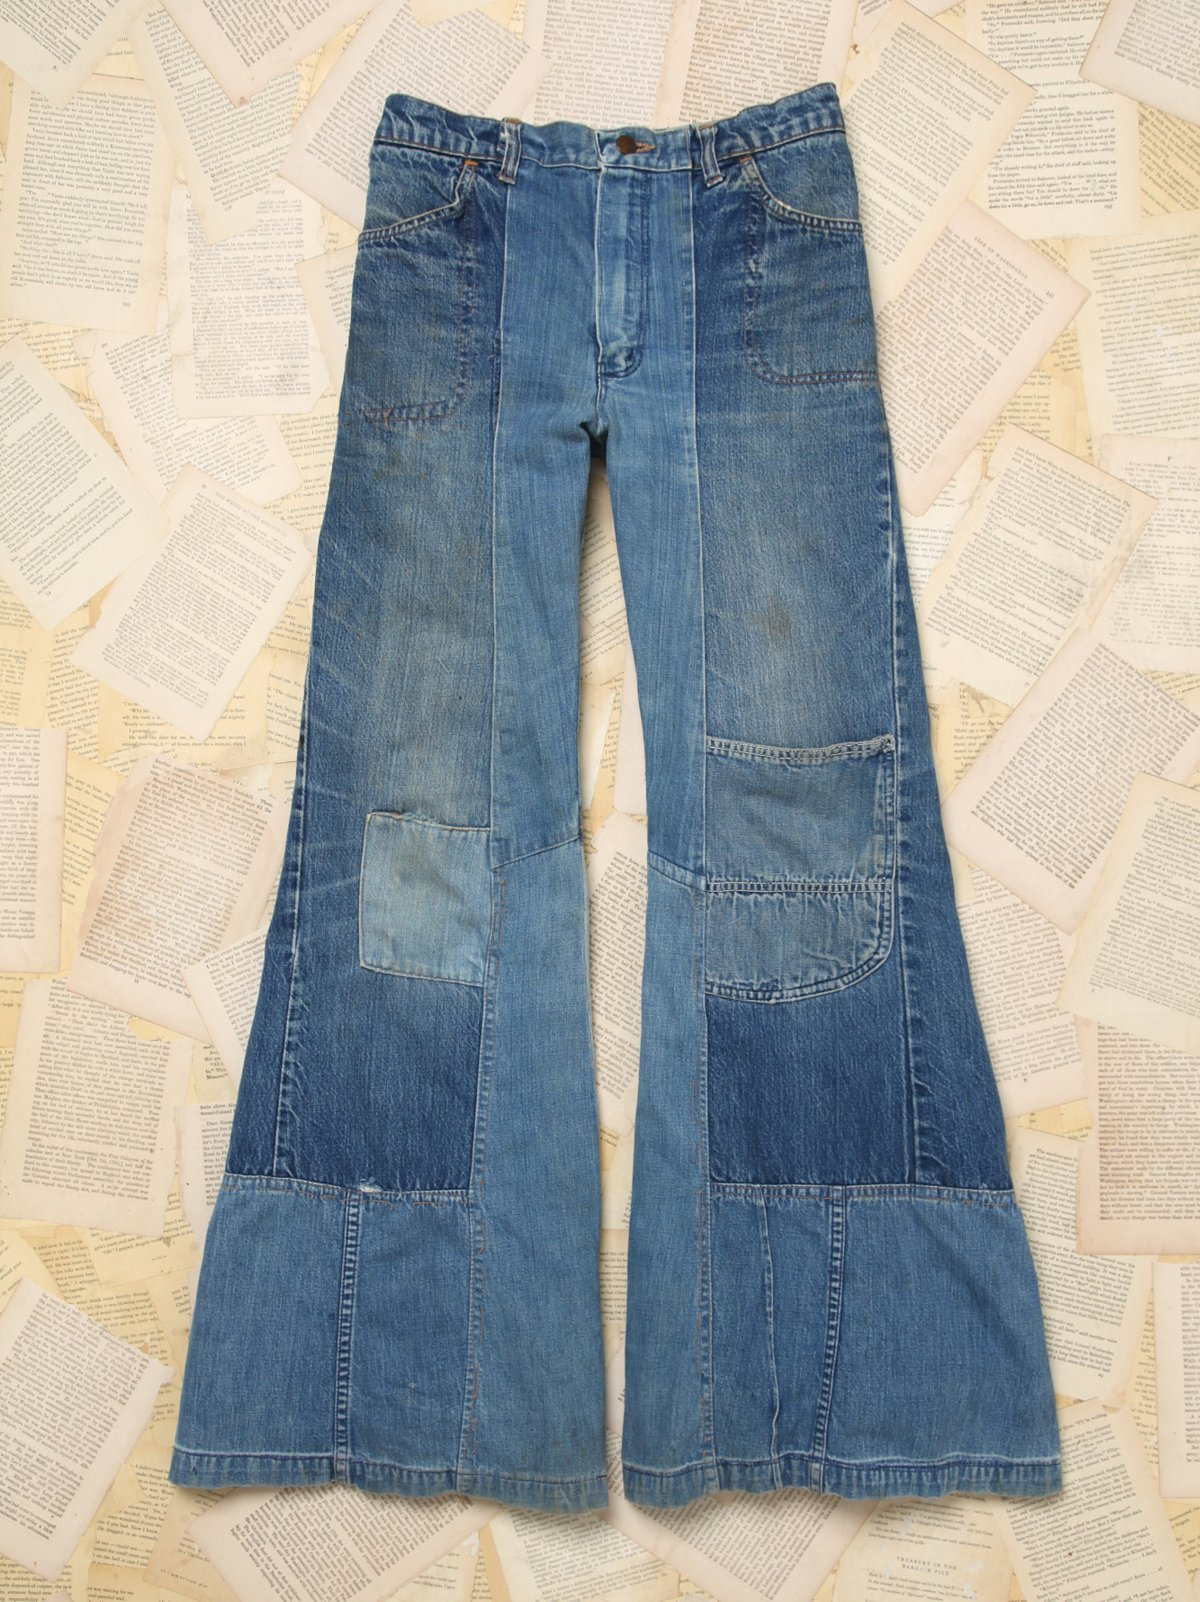 Vintage 1970s Homemade Denim Bell Bottoms